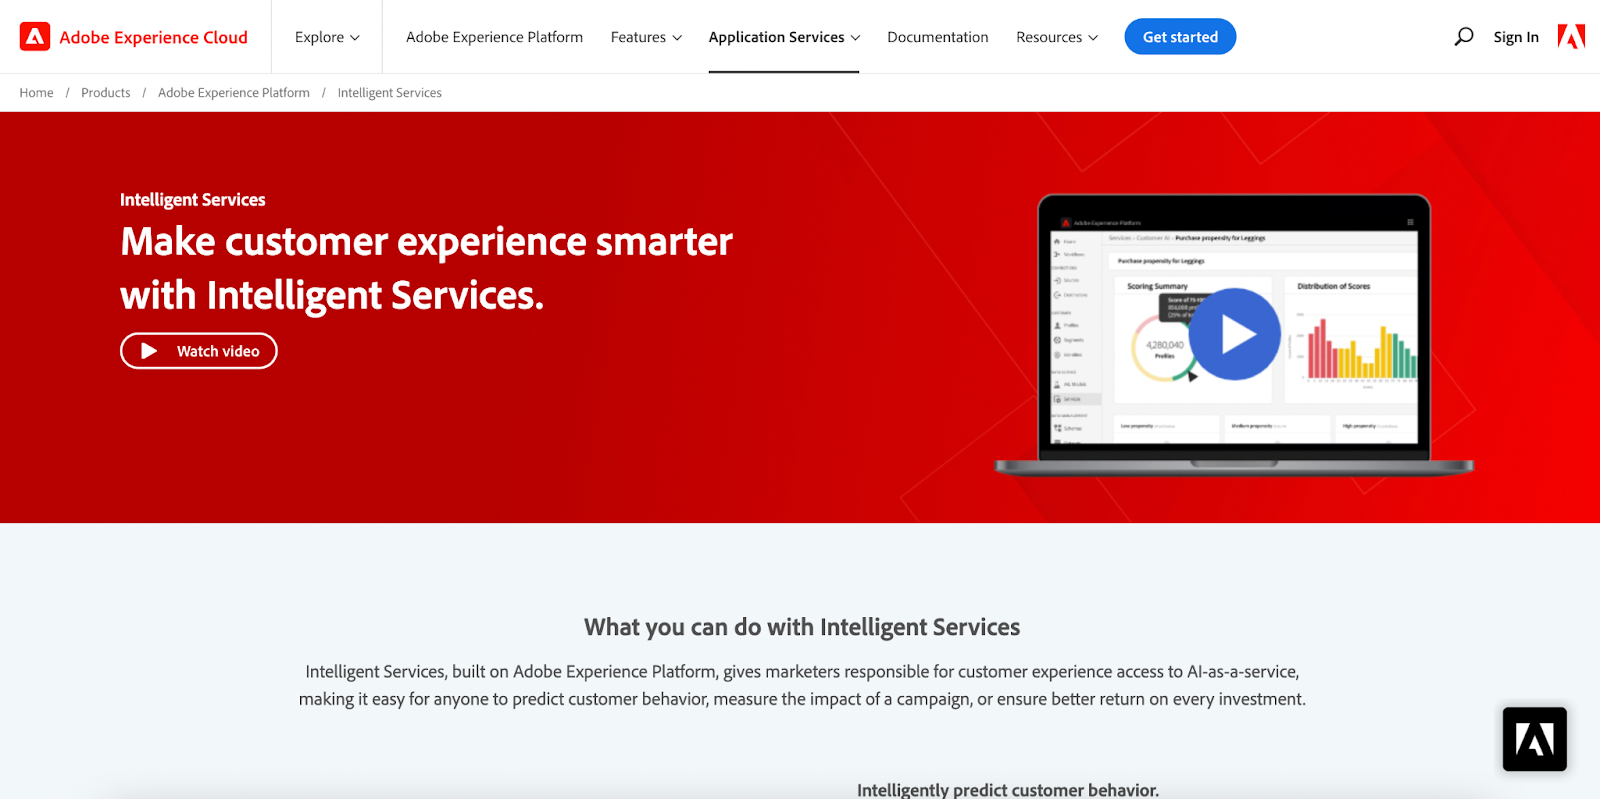 Adobe explainer video of their Intelligent Services product